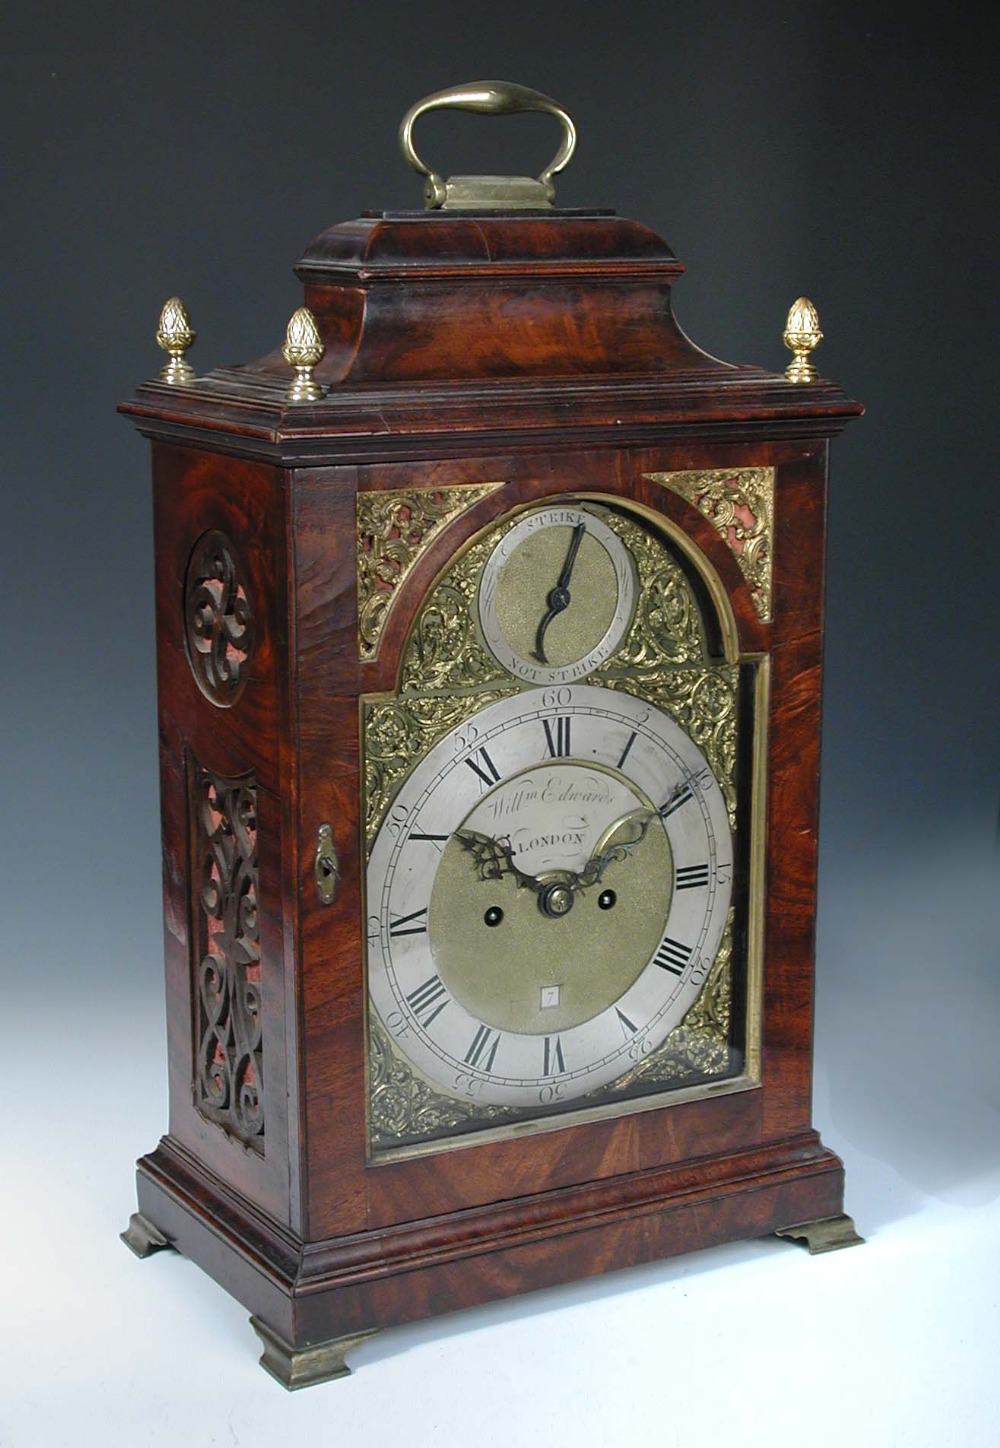 Lot 686 - A George III mahogany bracket clock, the bell top case with brass handle and four gilt finials above